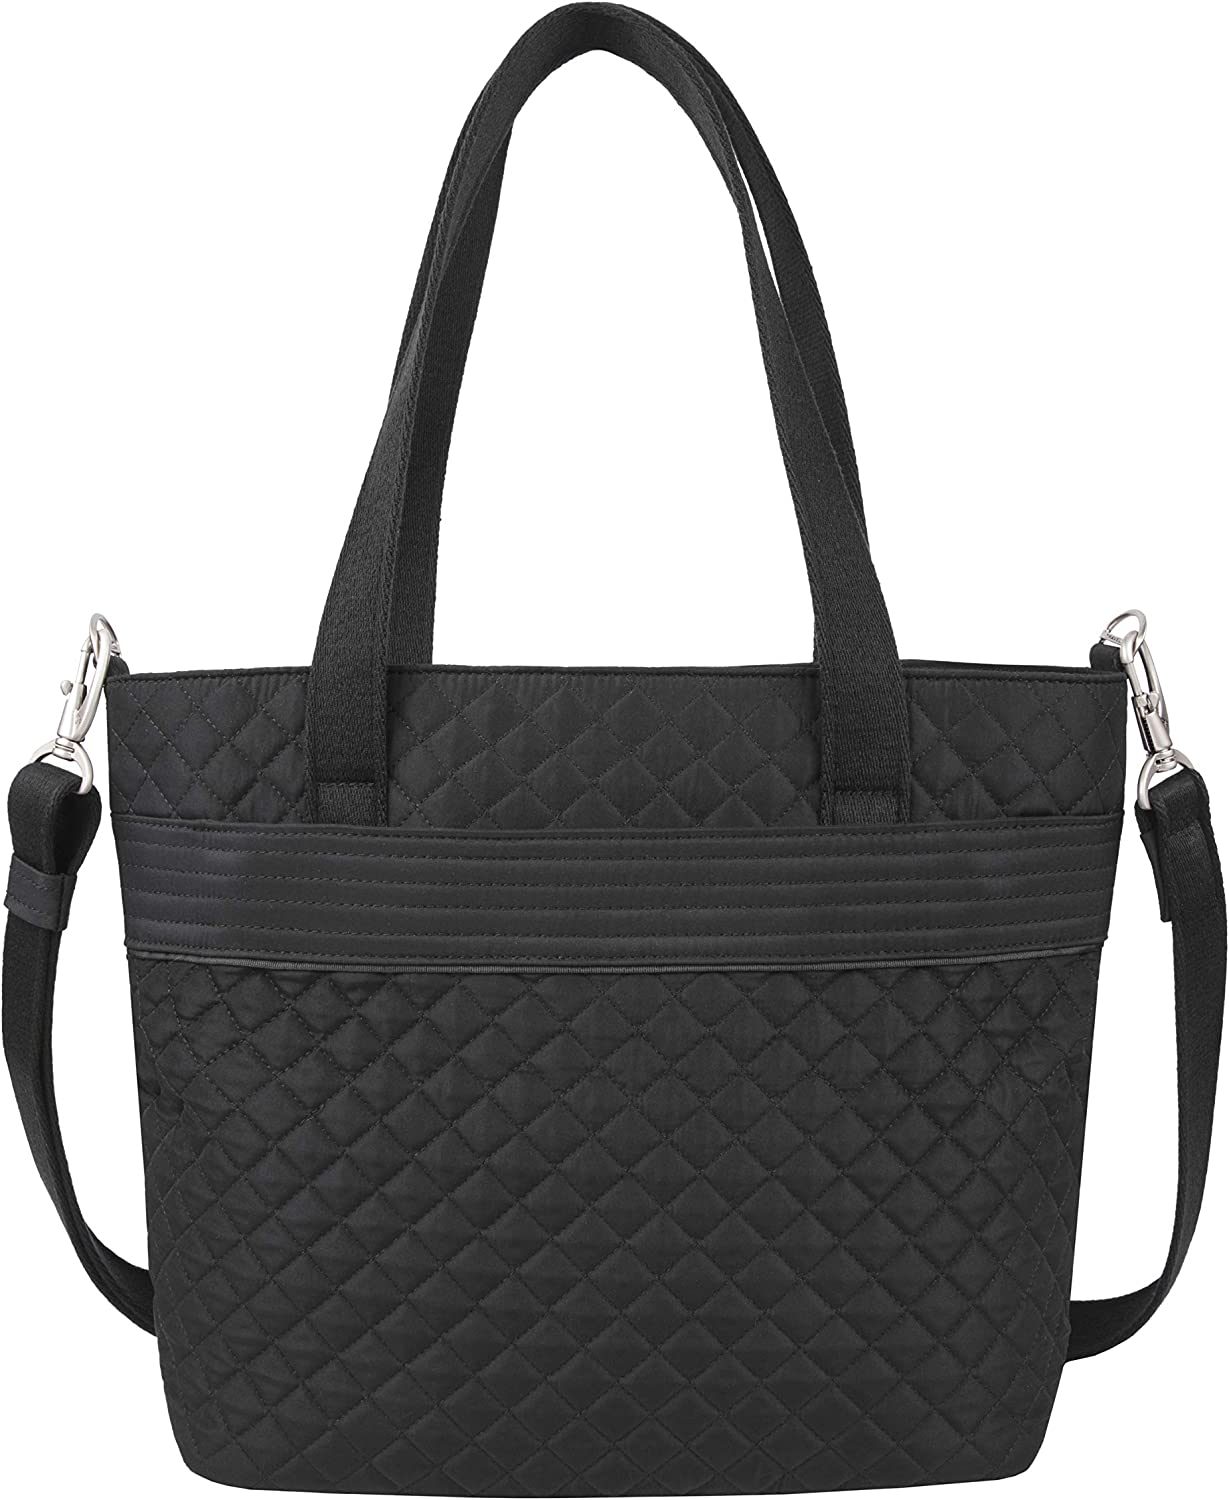 Travelon: Anti-Theft Boho Tote Bag - Black